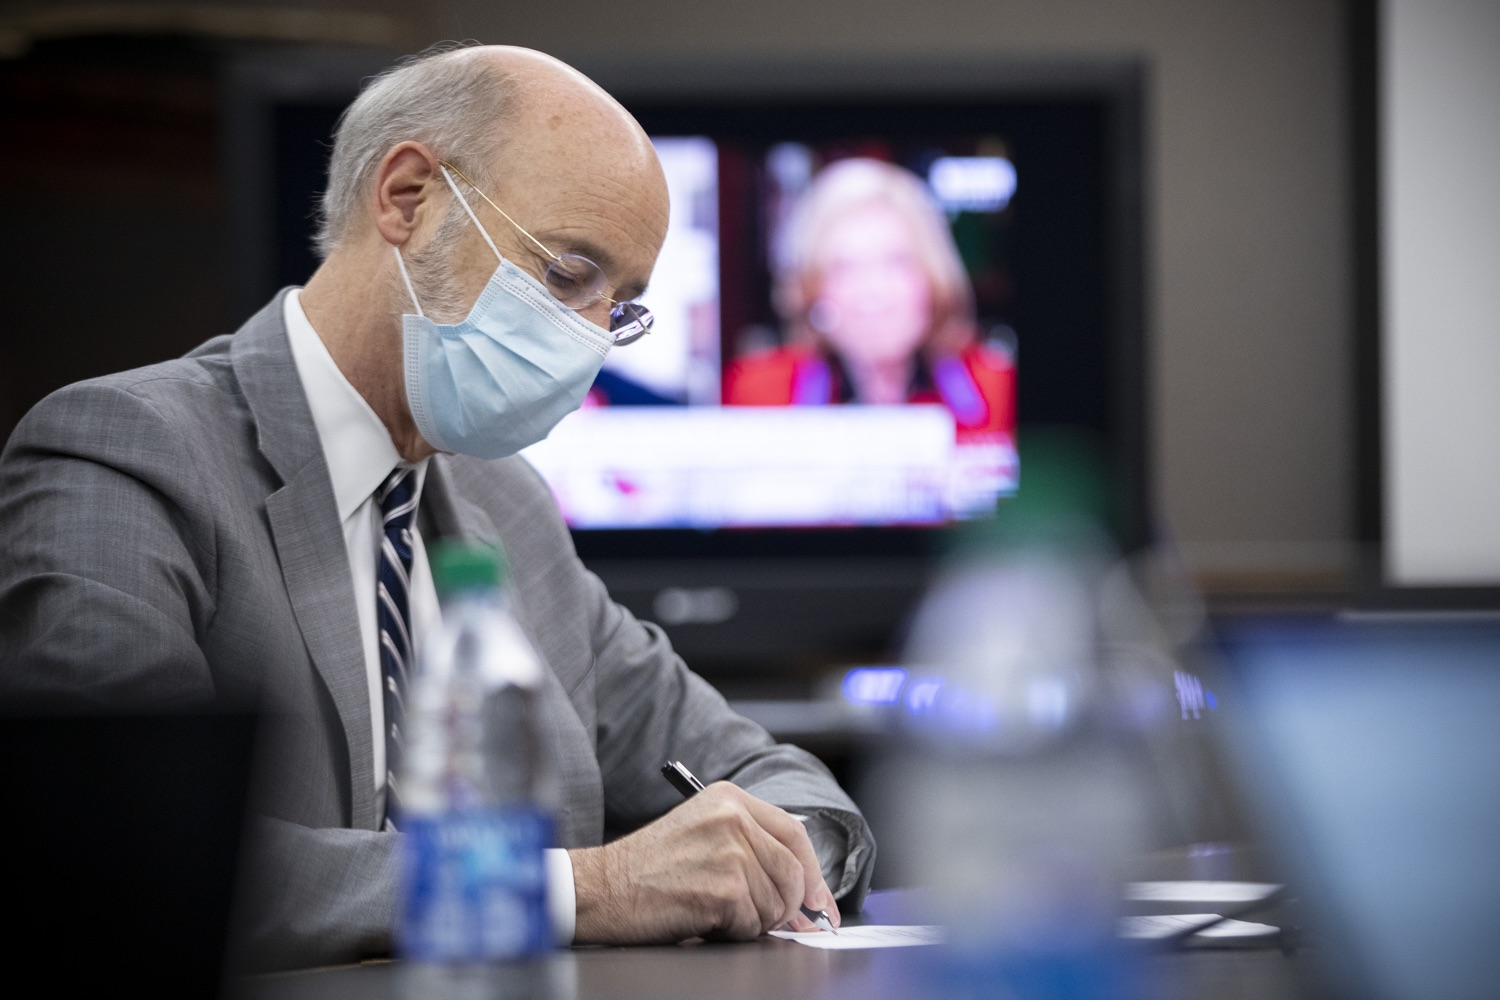 """<a href=""""https://filesource.wostreaming.net/commonwealthofpa/photo/18380_gov_election_update_dz_008.jpg"""" target=""""_blank"""">⇣Download Photo<br></a>Governor Tom Wolf and Secretary of State Kathy Boockvar monitor the election before the press conference.  Governor Tom Wolf and Pennsylvania Secretary of State Kathy Boockvar gave an update on the election process in Pennsylvania. NOVEMBER 04, 2020 - HARRISBURG, PA"""